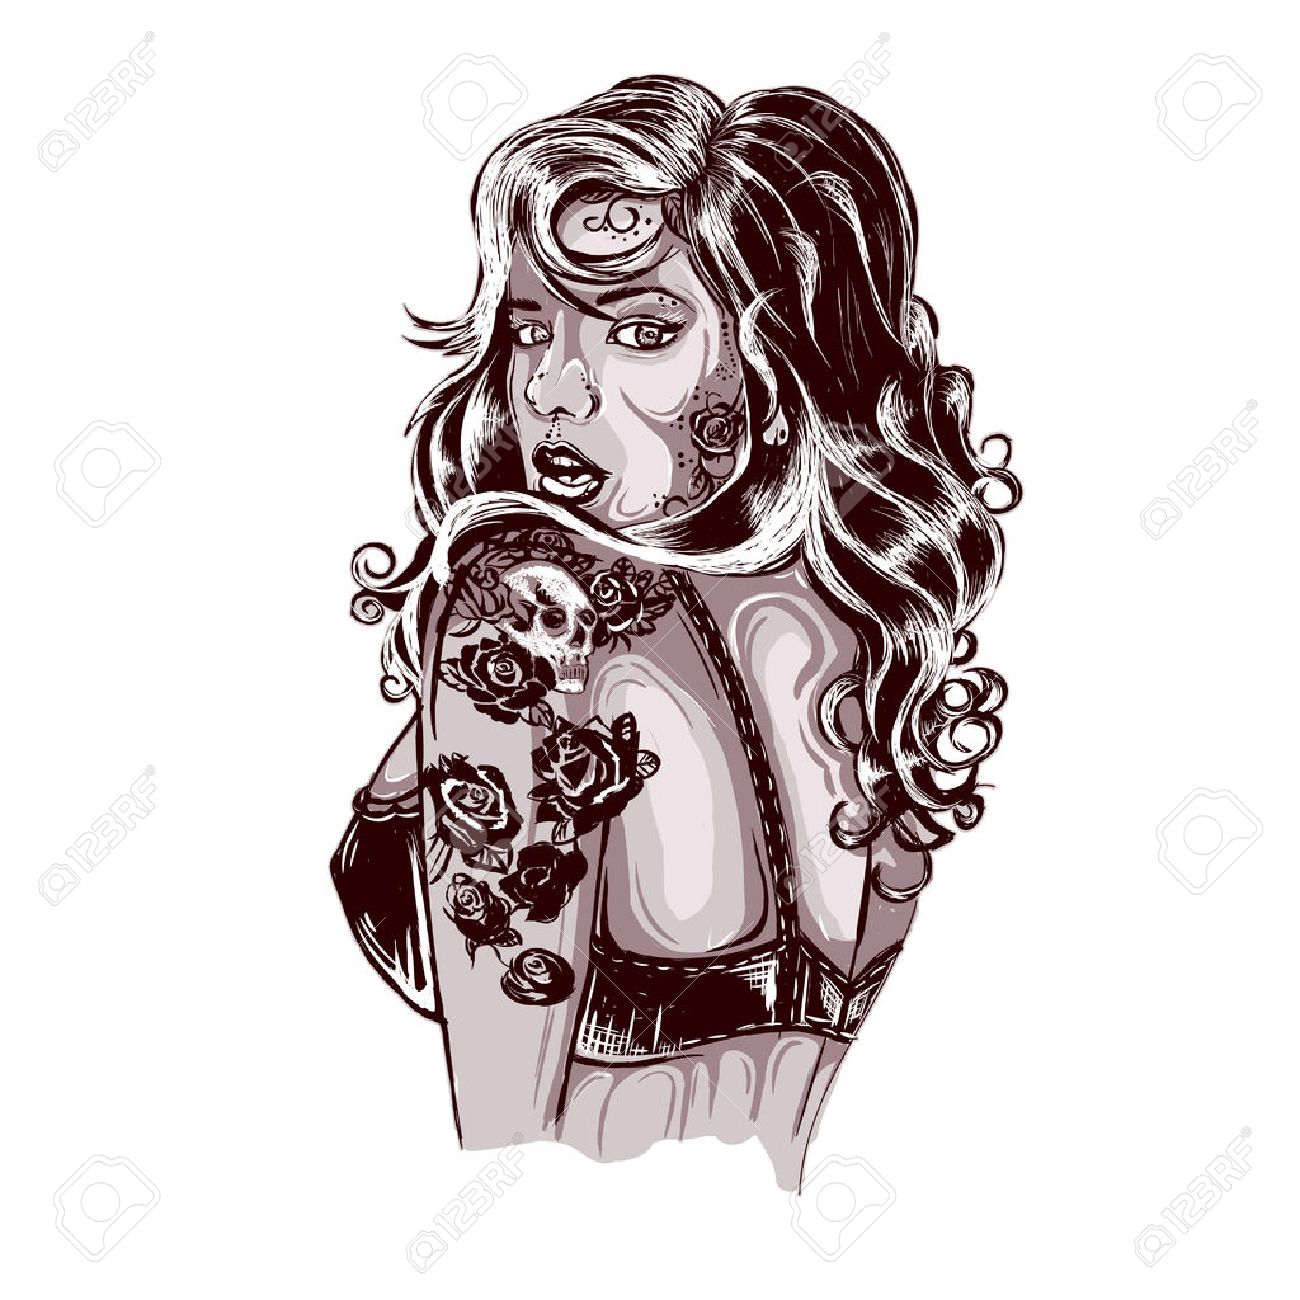 Tattoo pin up girls designs - Pin Up Girl Tattoo Old School Tattoos Swallow Tattoo Design Shop Tattooed Lady Picture Illustration